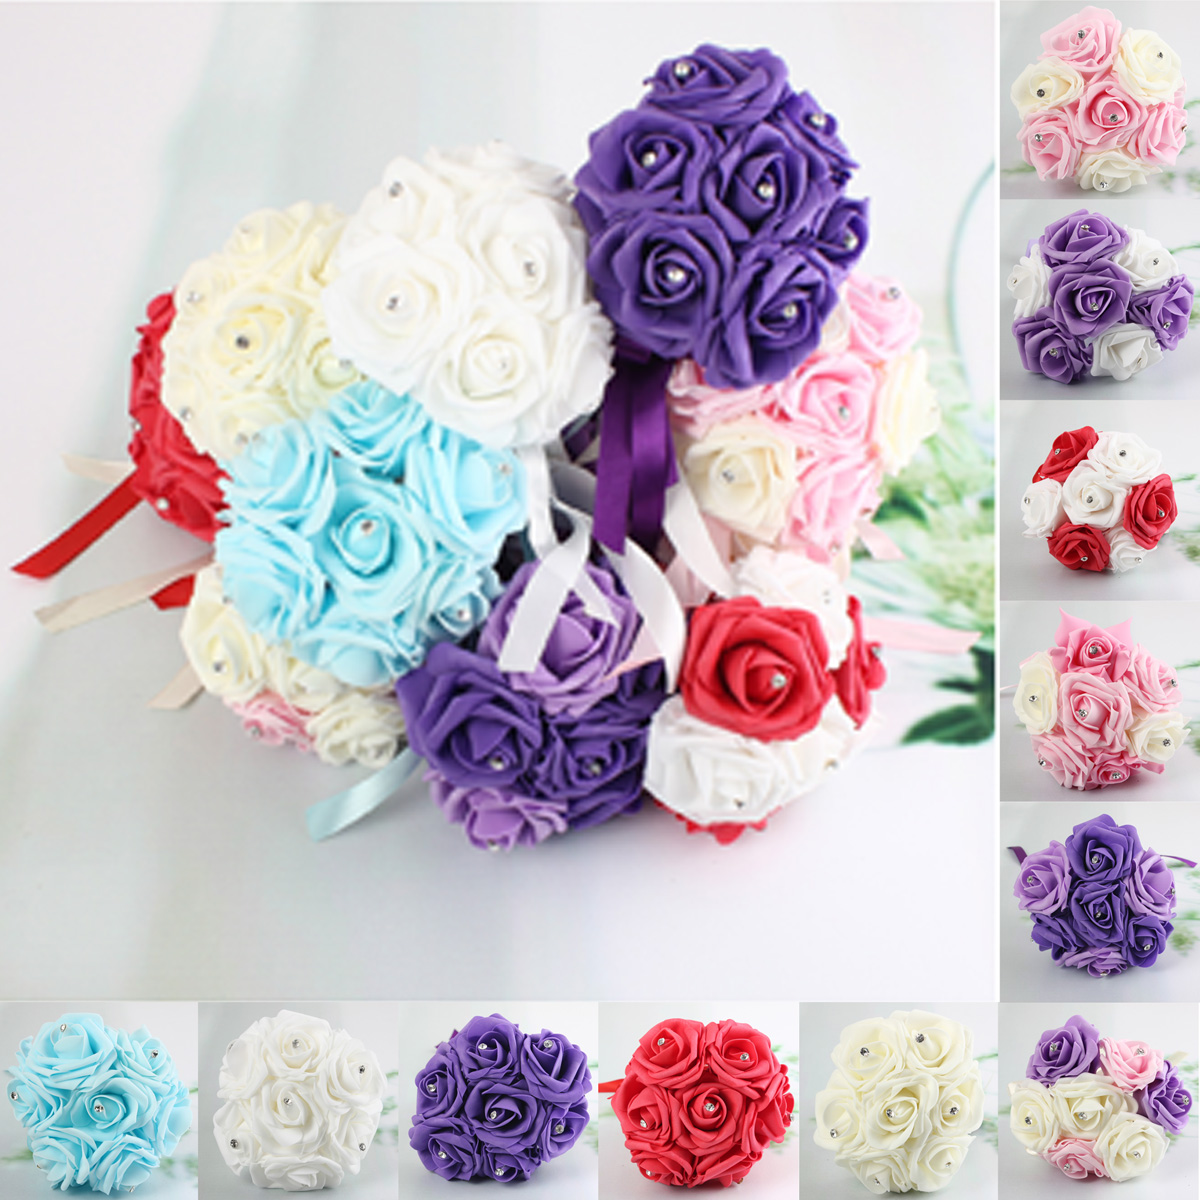 1 Bunch Artificial Foam Rose Craft Flower Bridal Rhinestone Crystal Bouquet Wedding Party Decor